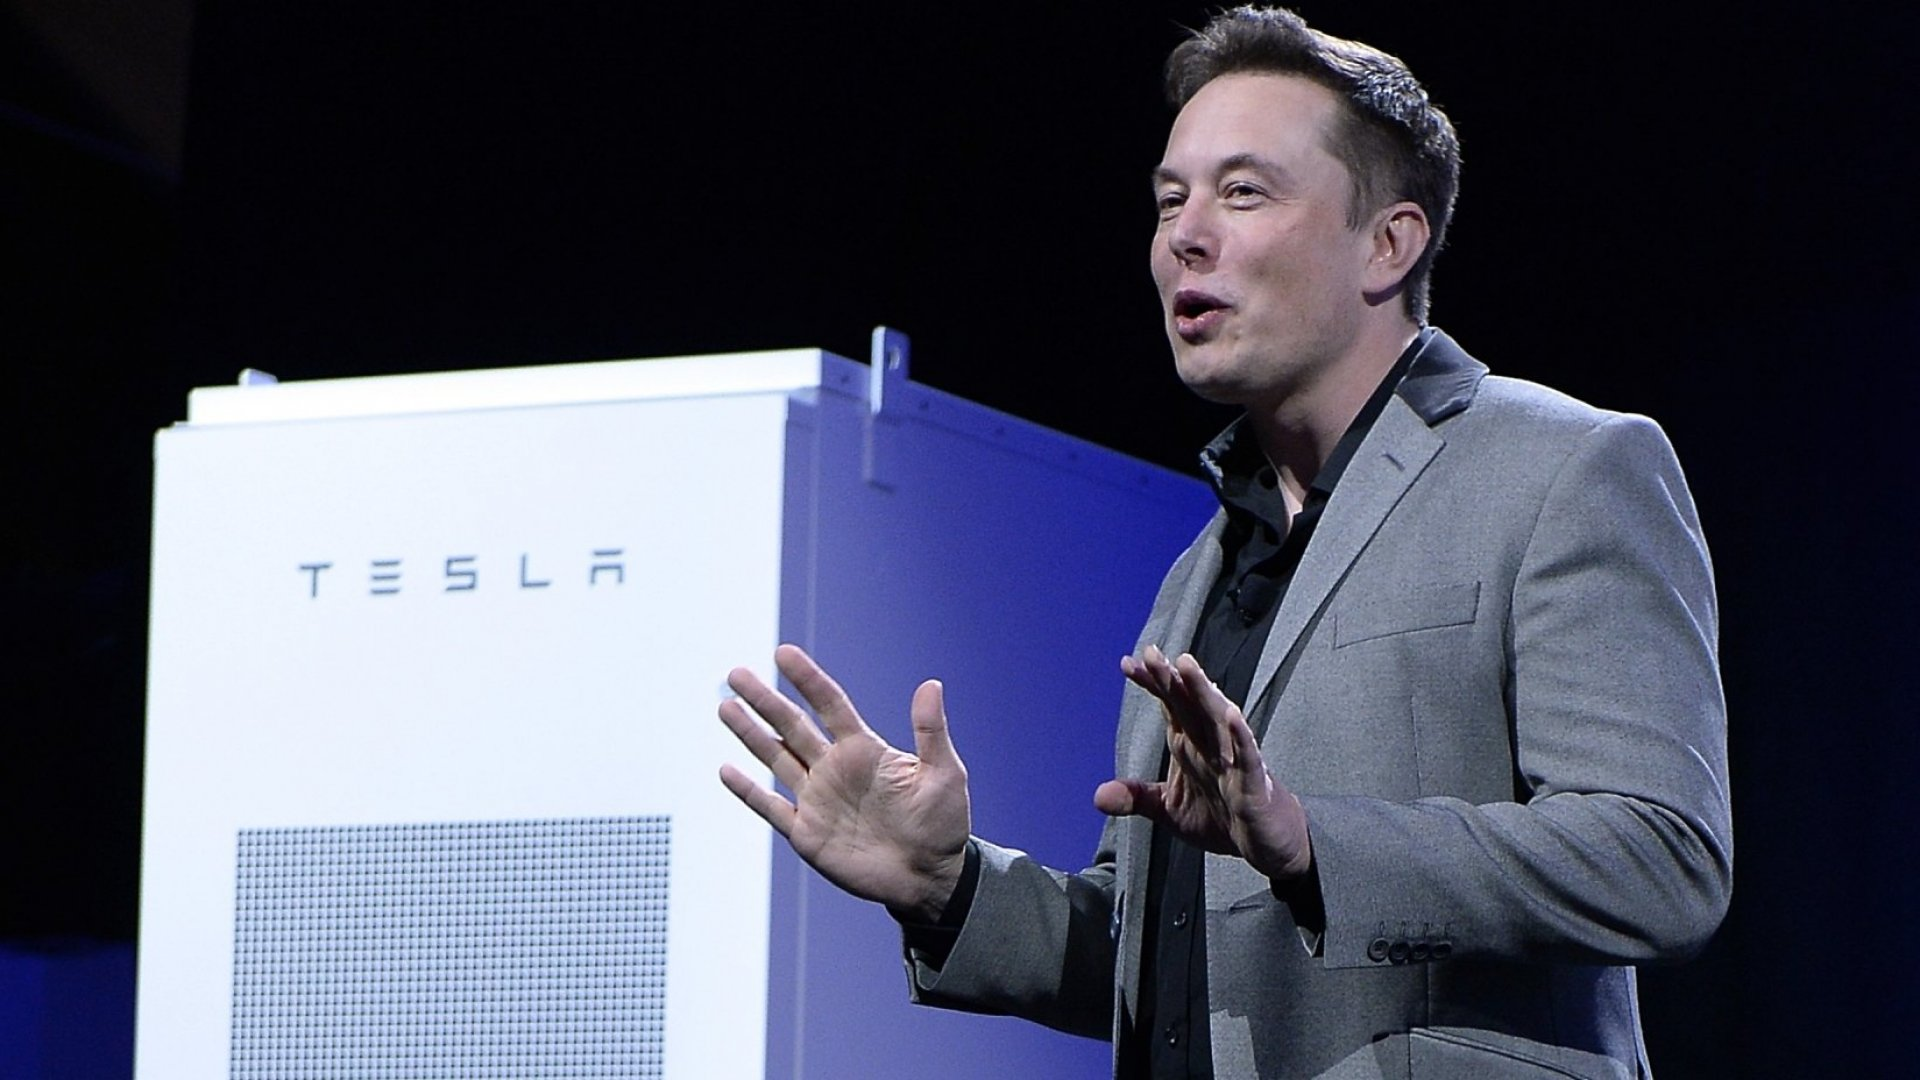 Elon Musk Unveils Tesla's Ambitious New Home Battery System